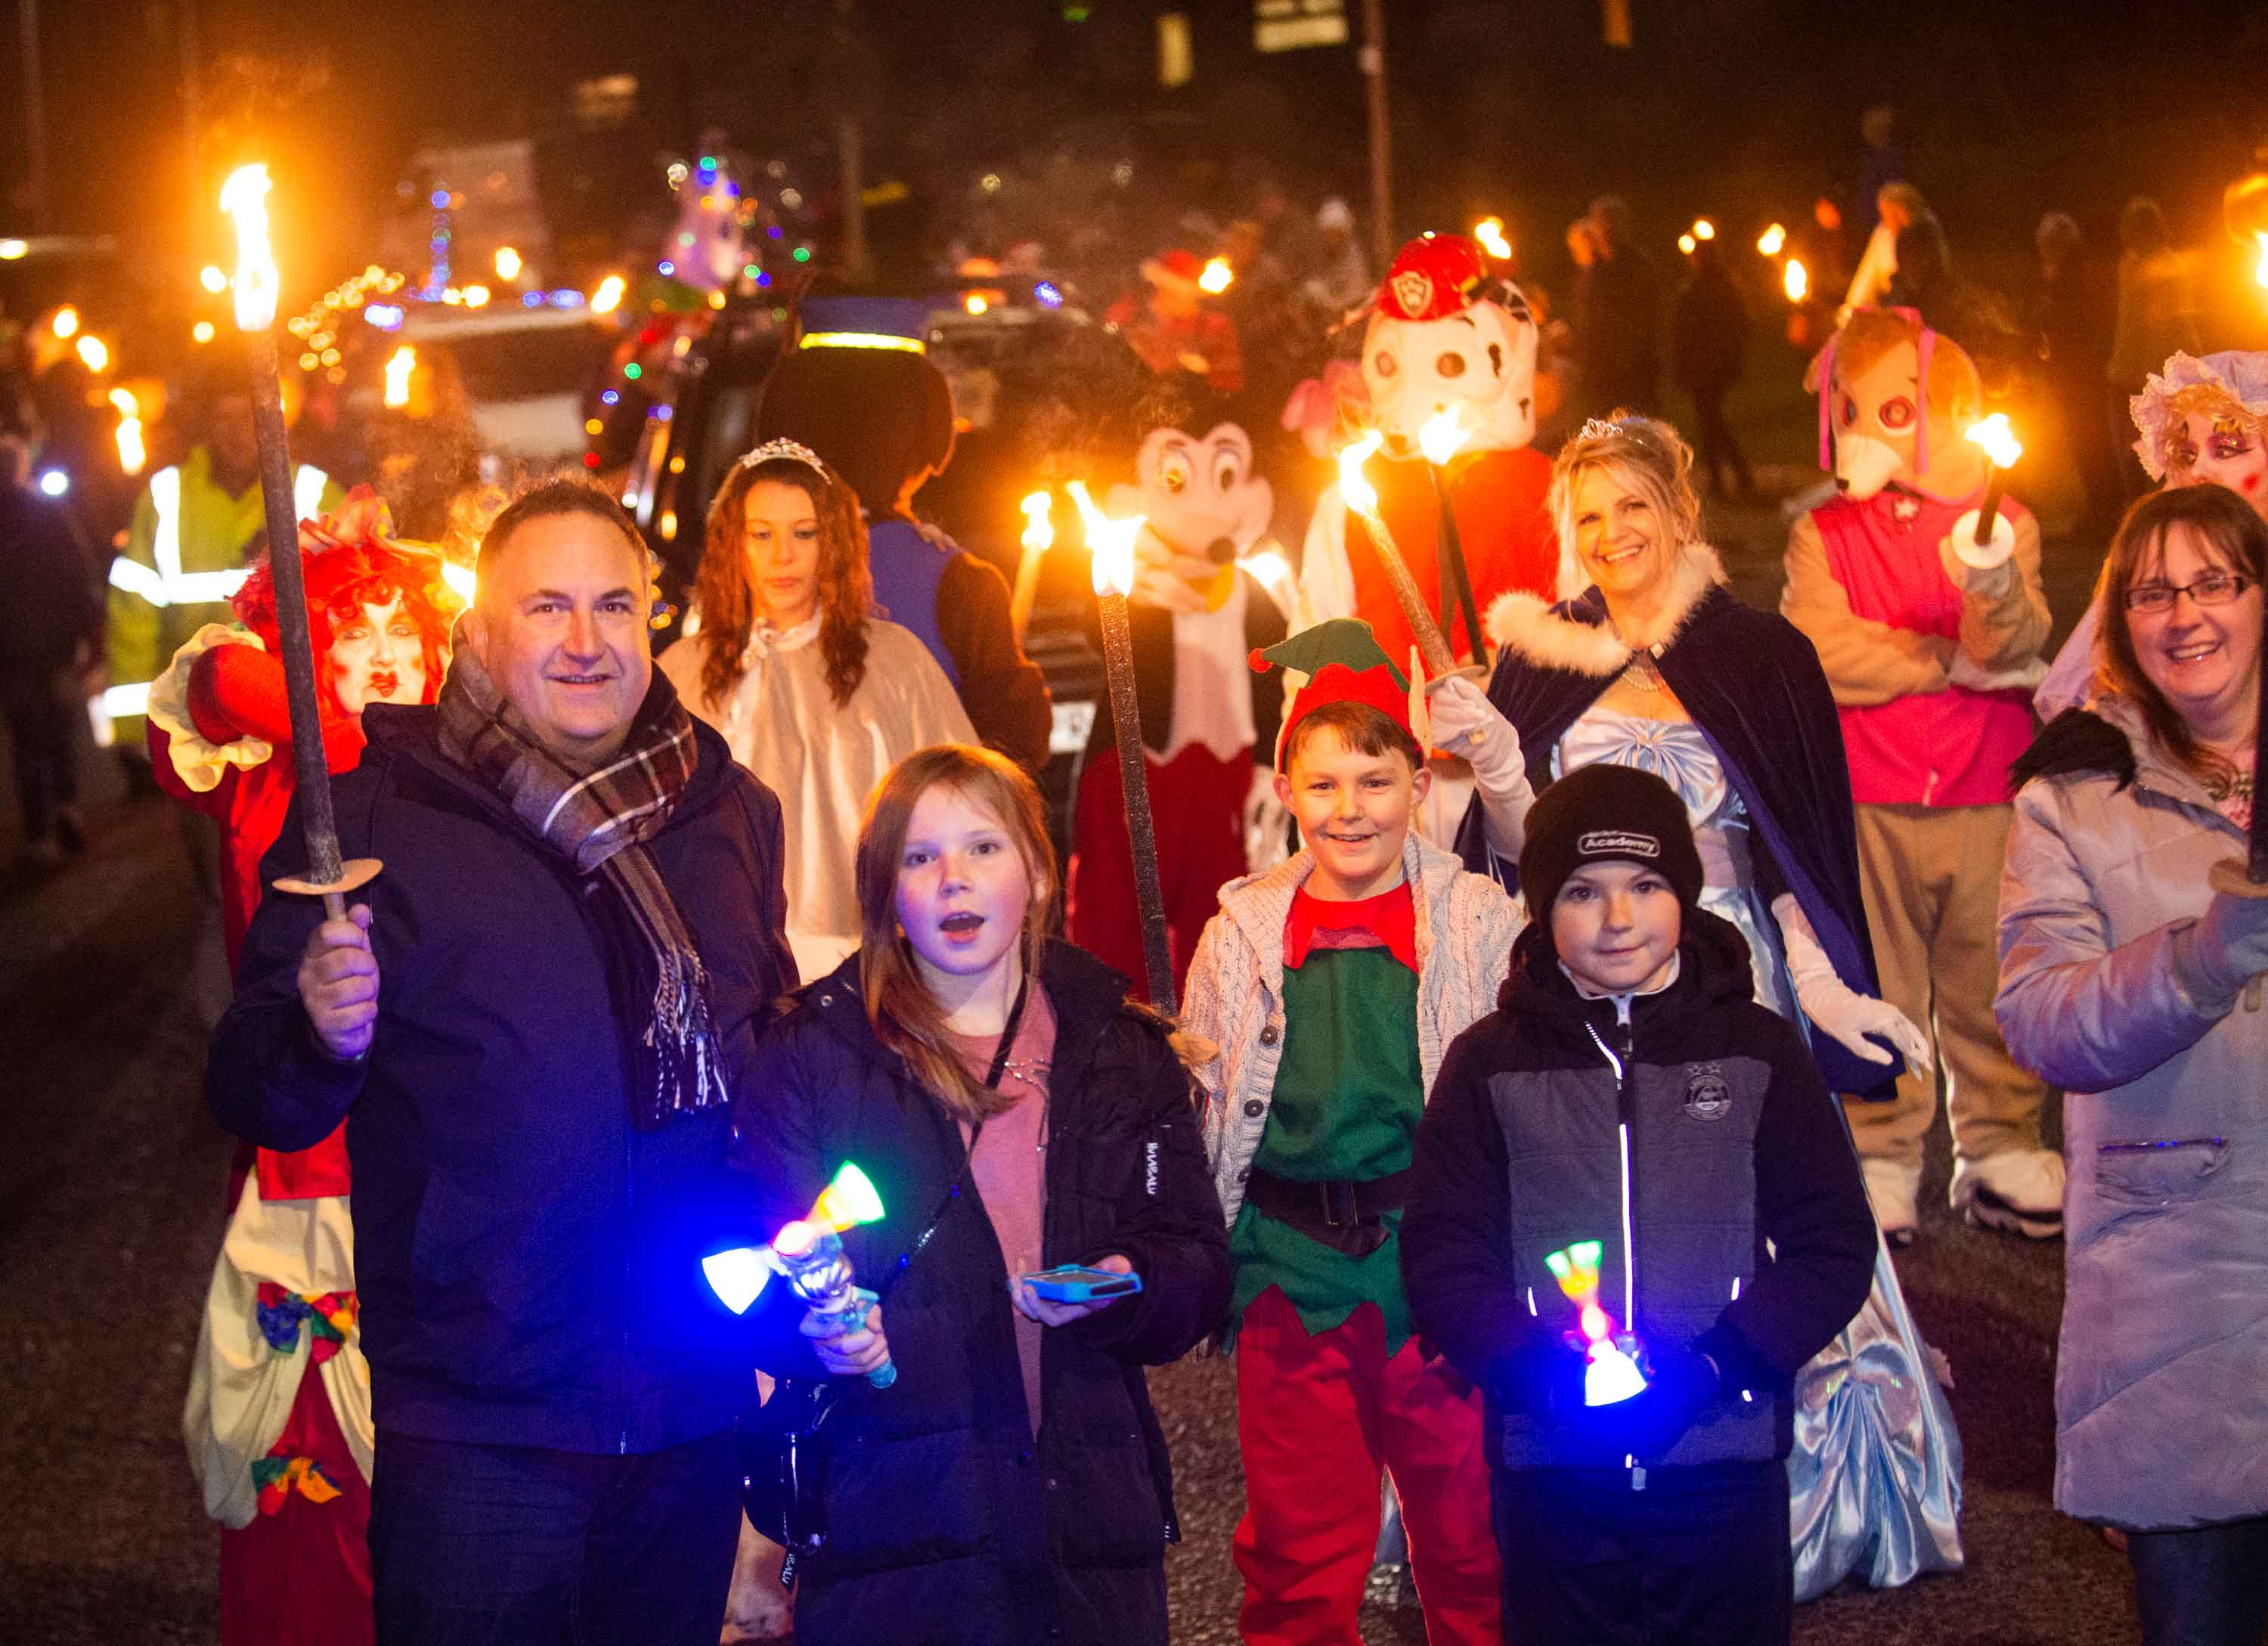 Lossiemouth hosts a festive extravaganza to mark the 20th anniversary of the town's Christmas lights switch on